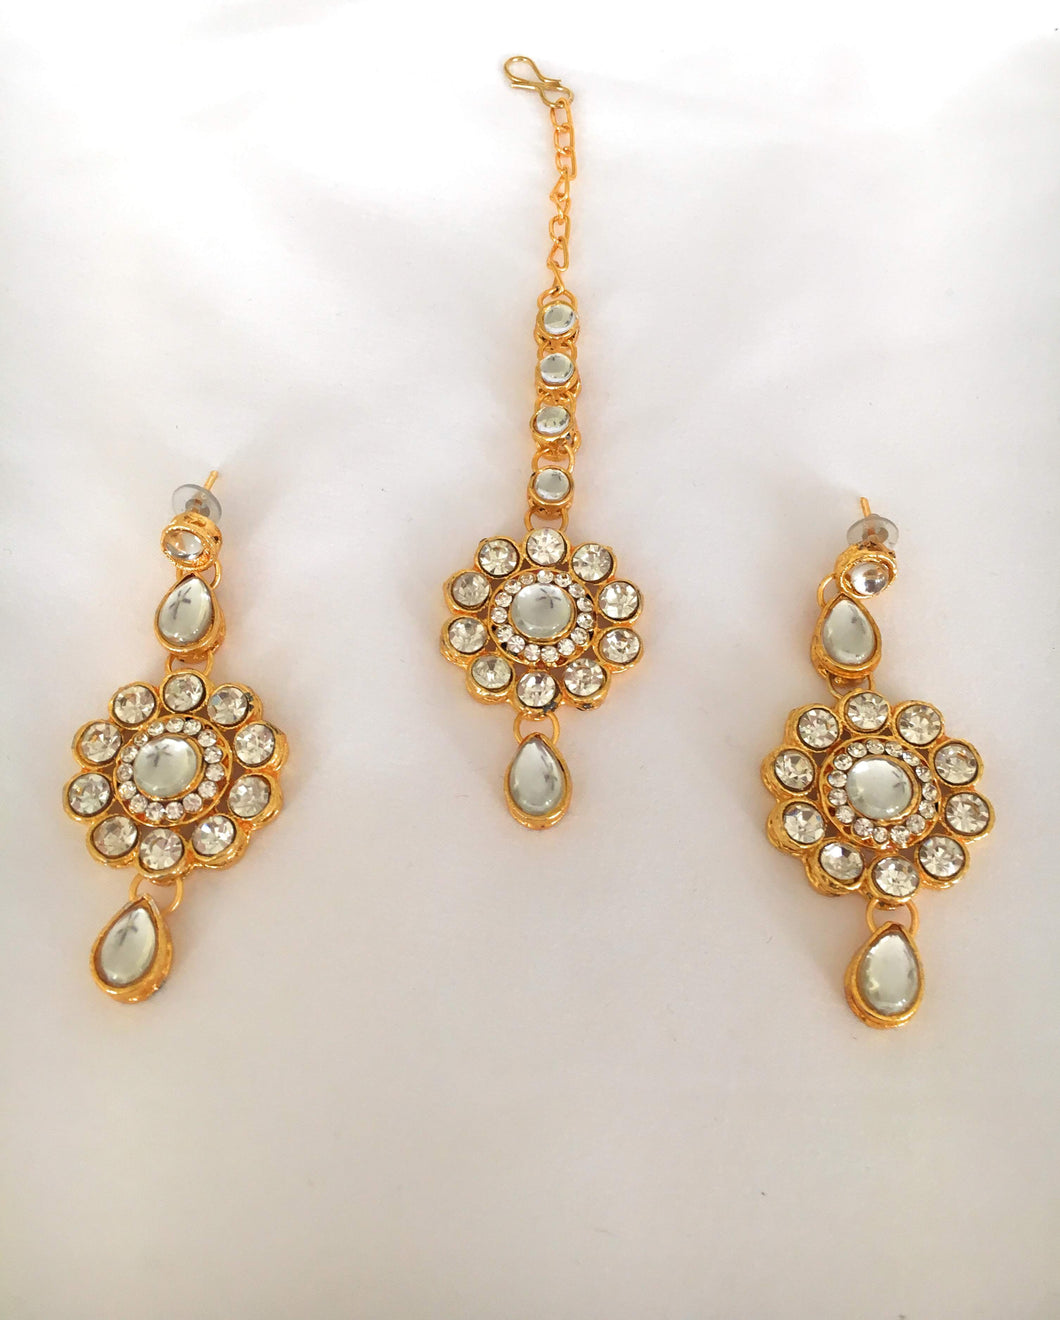 Jewelry Earring Set in White